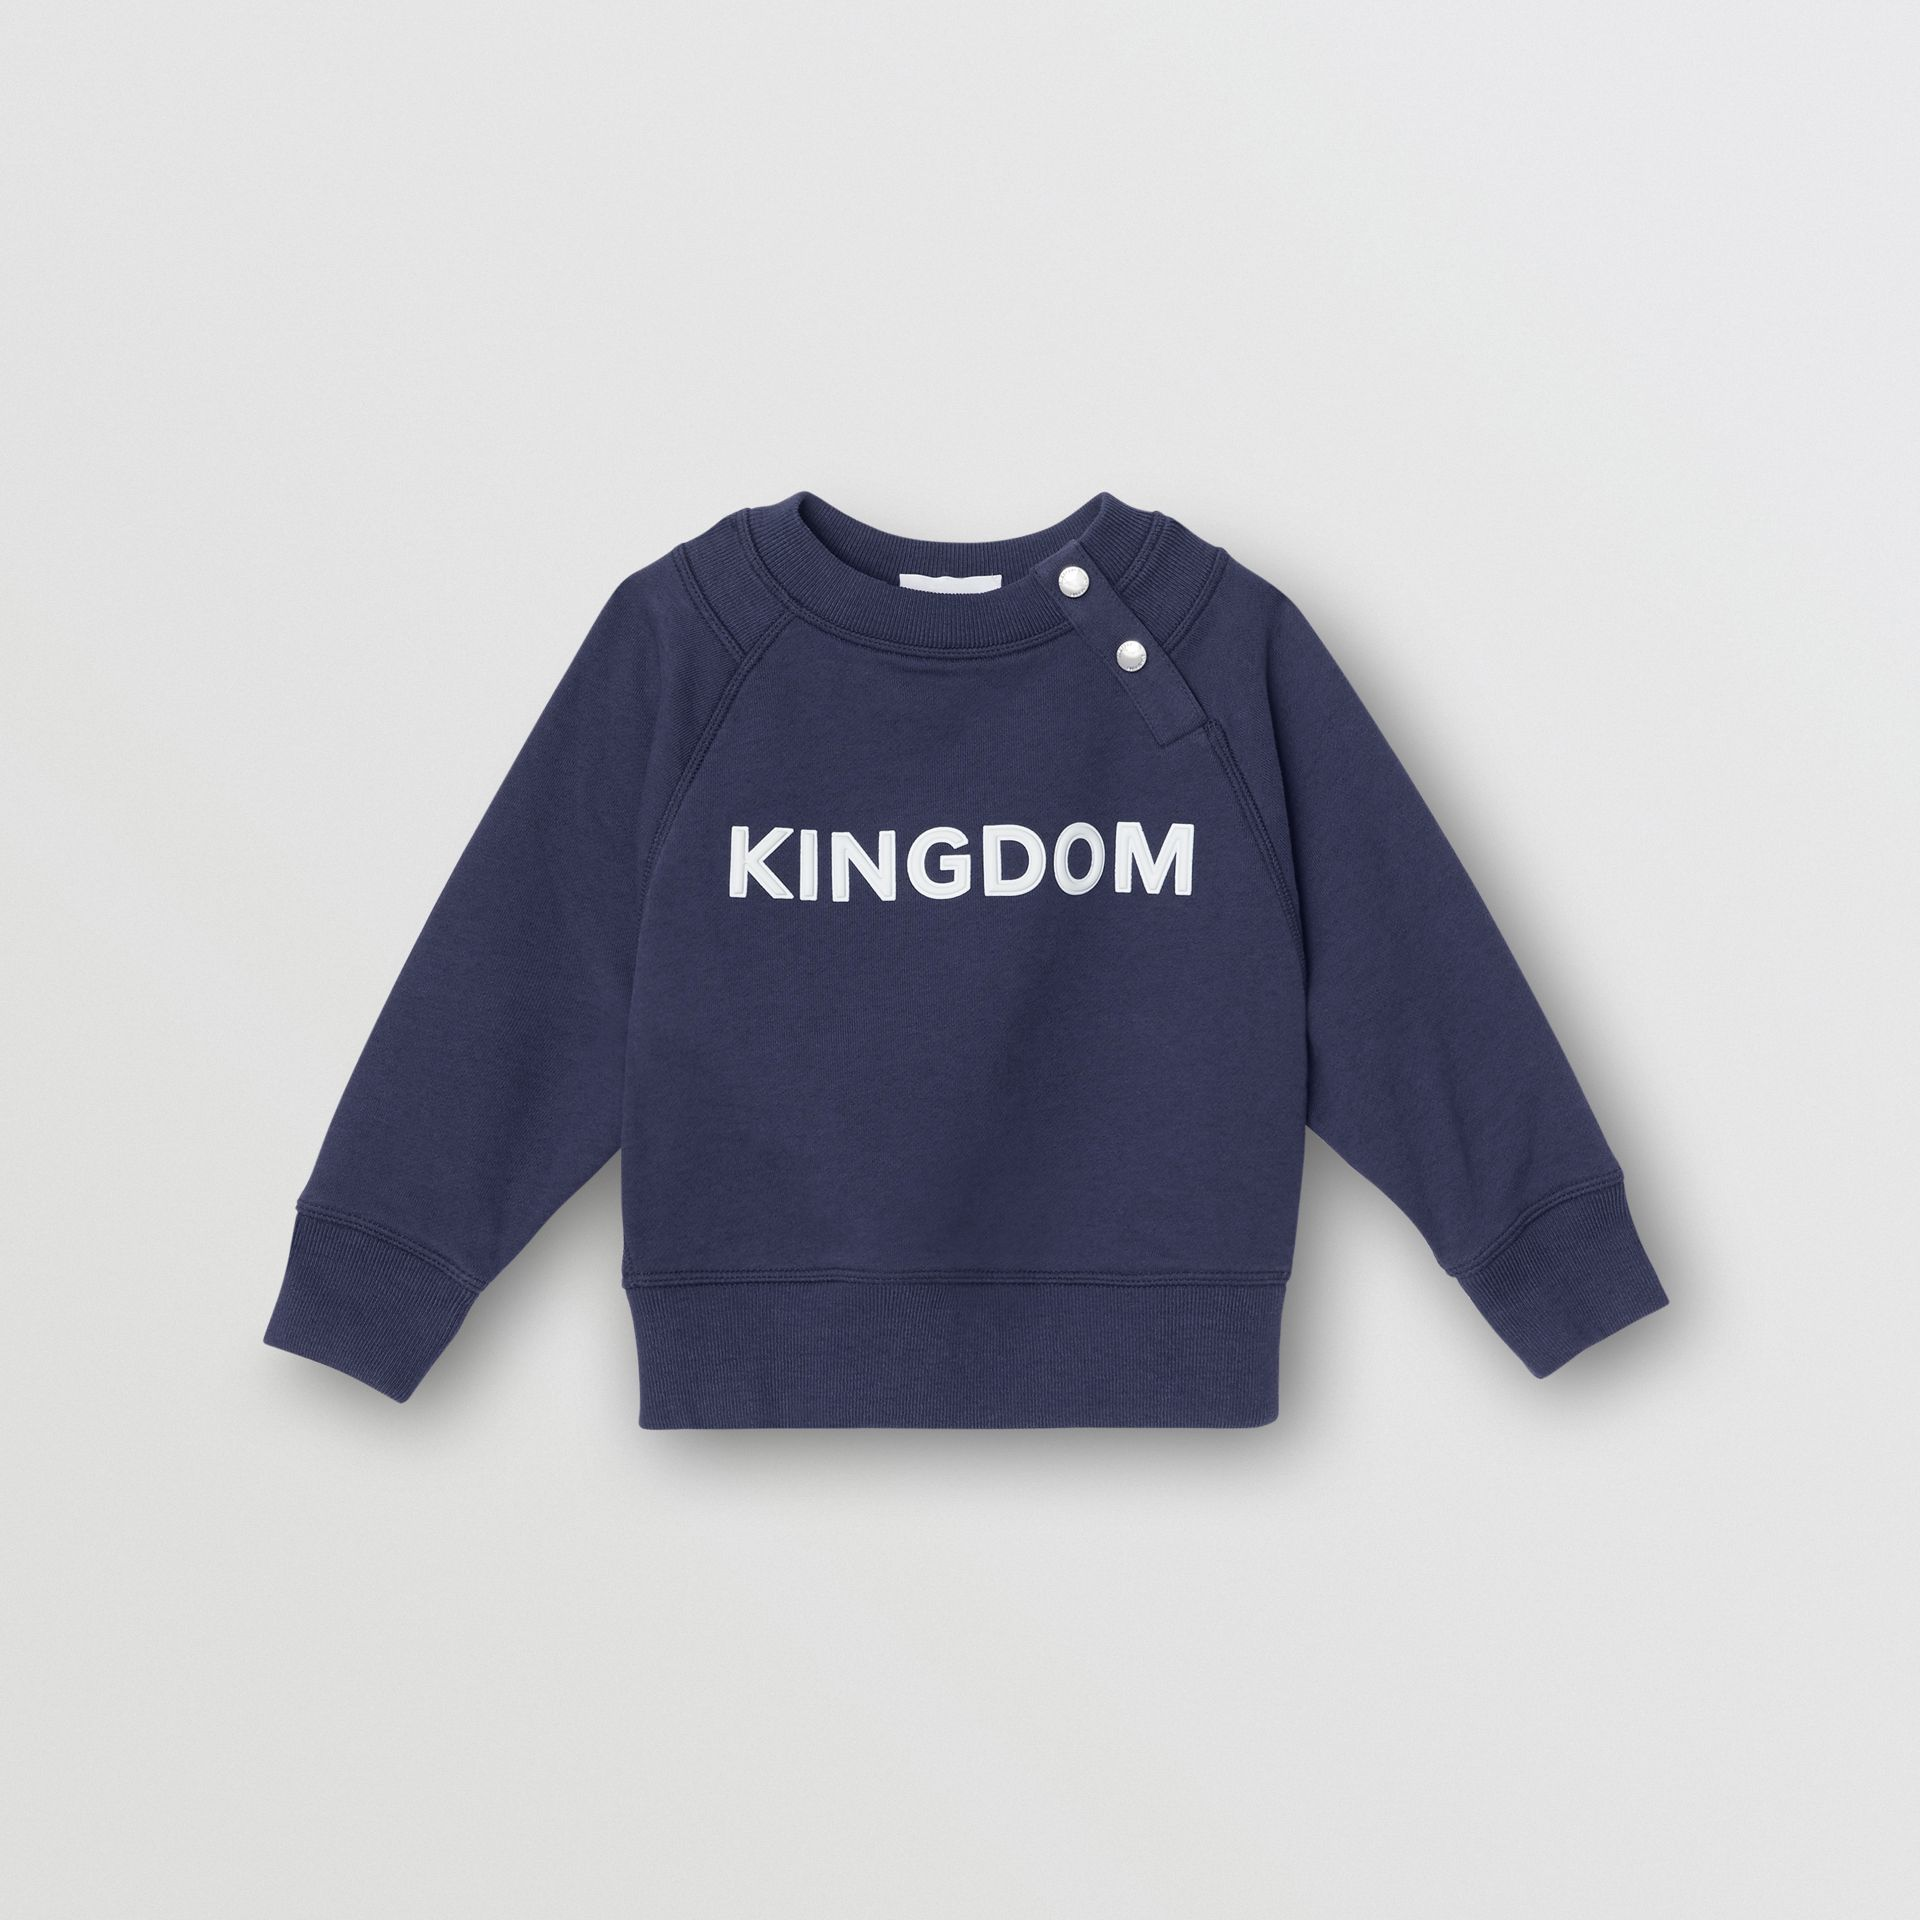 Kingdom Motif Cotton Sweatshirt in Slate Blue Melange - Children | Burberry Australia - gallery image 0